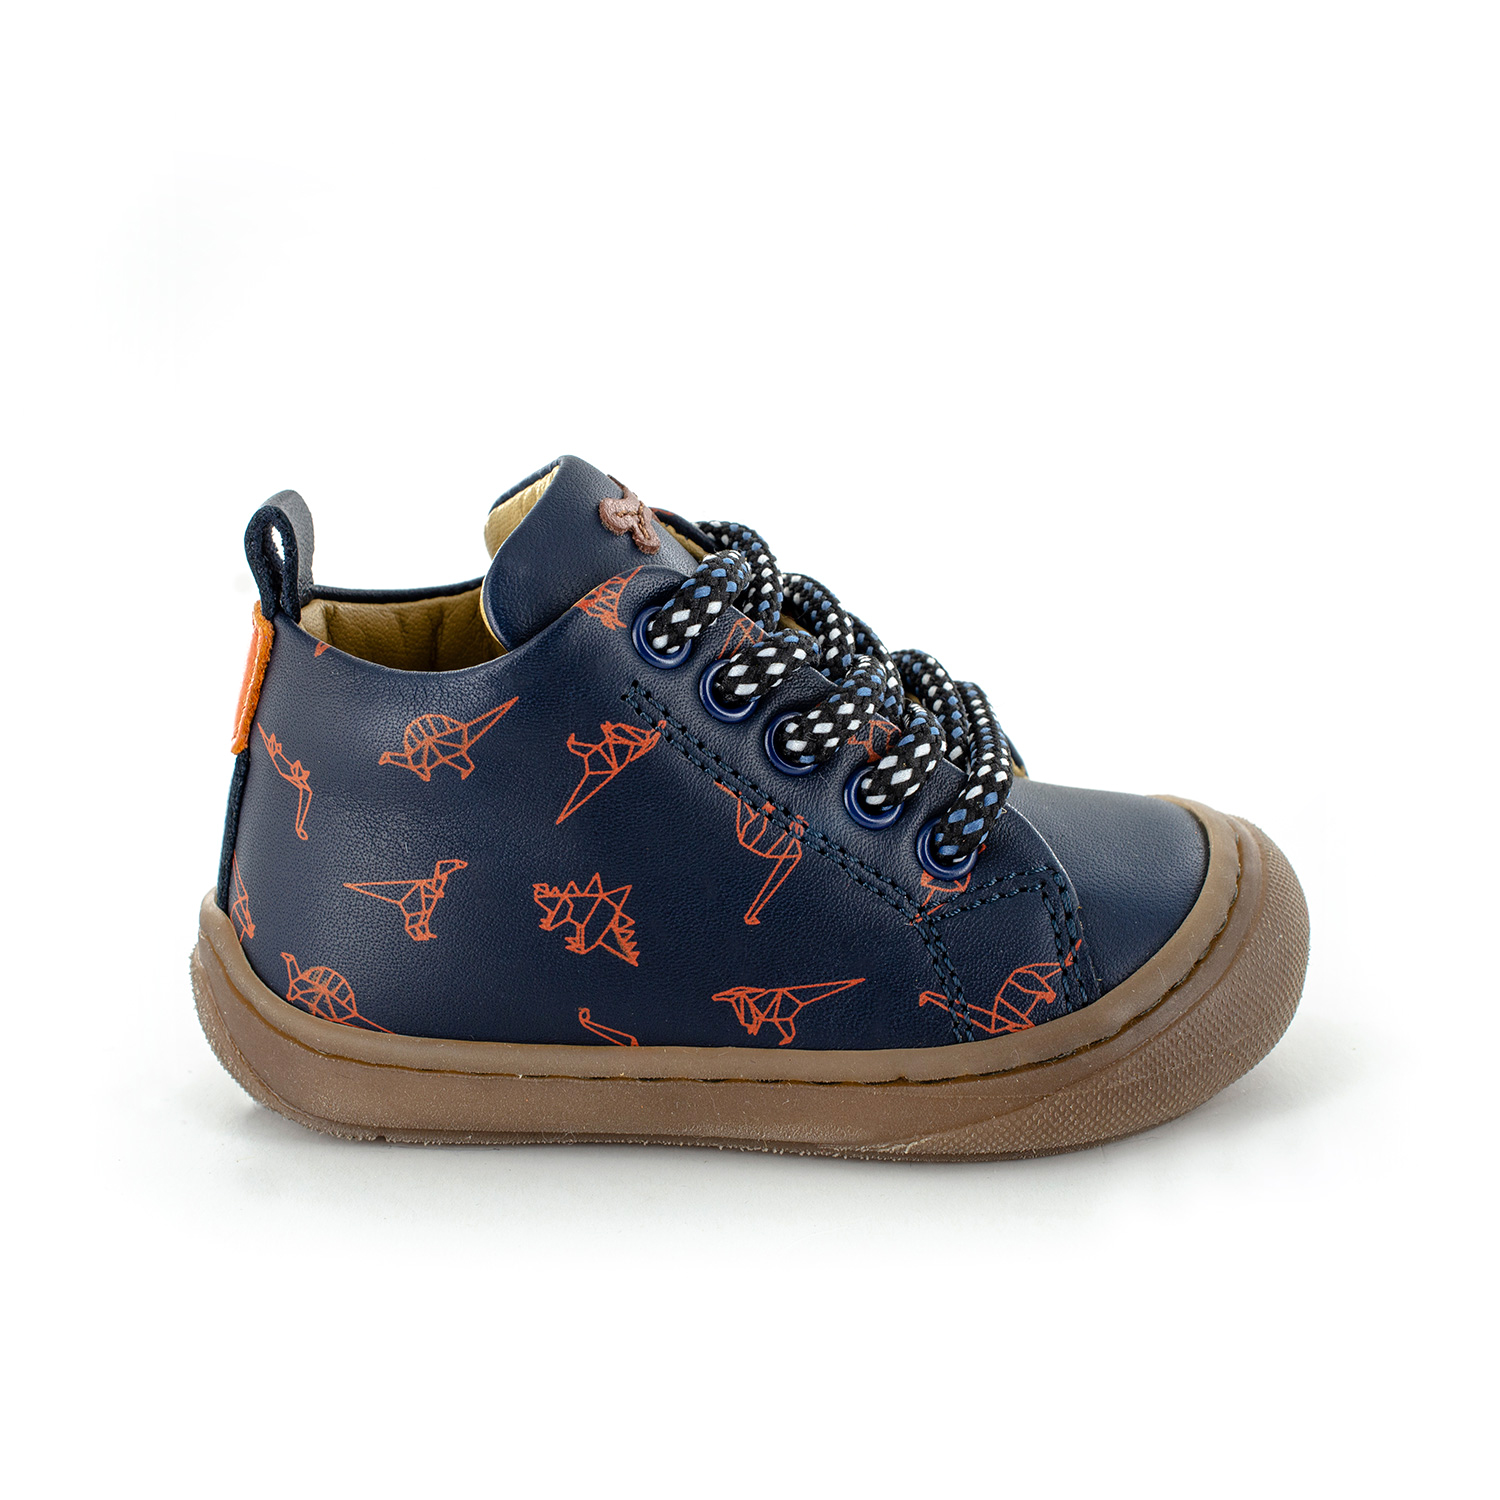 VORM calf navy + brick